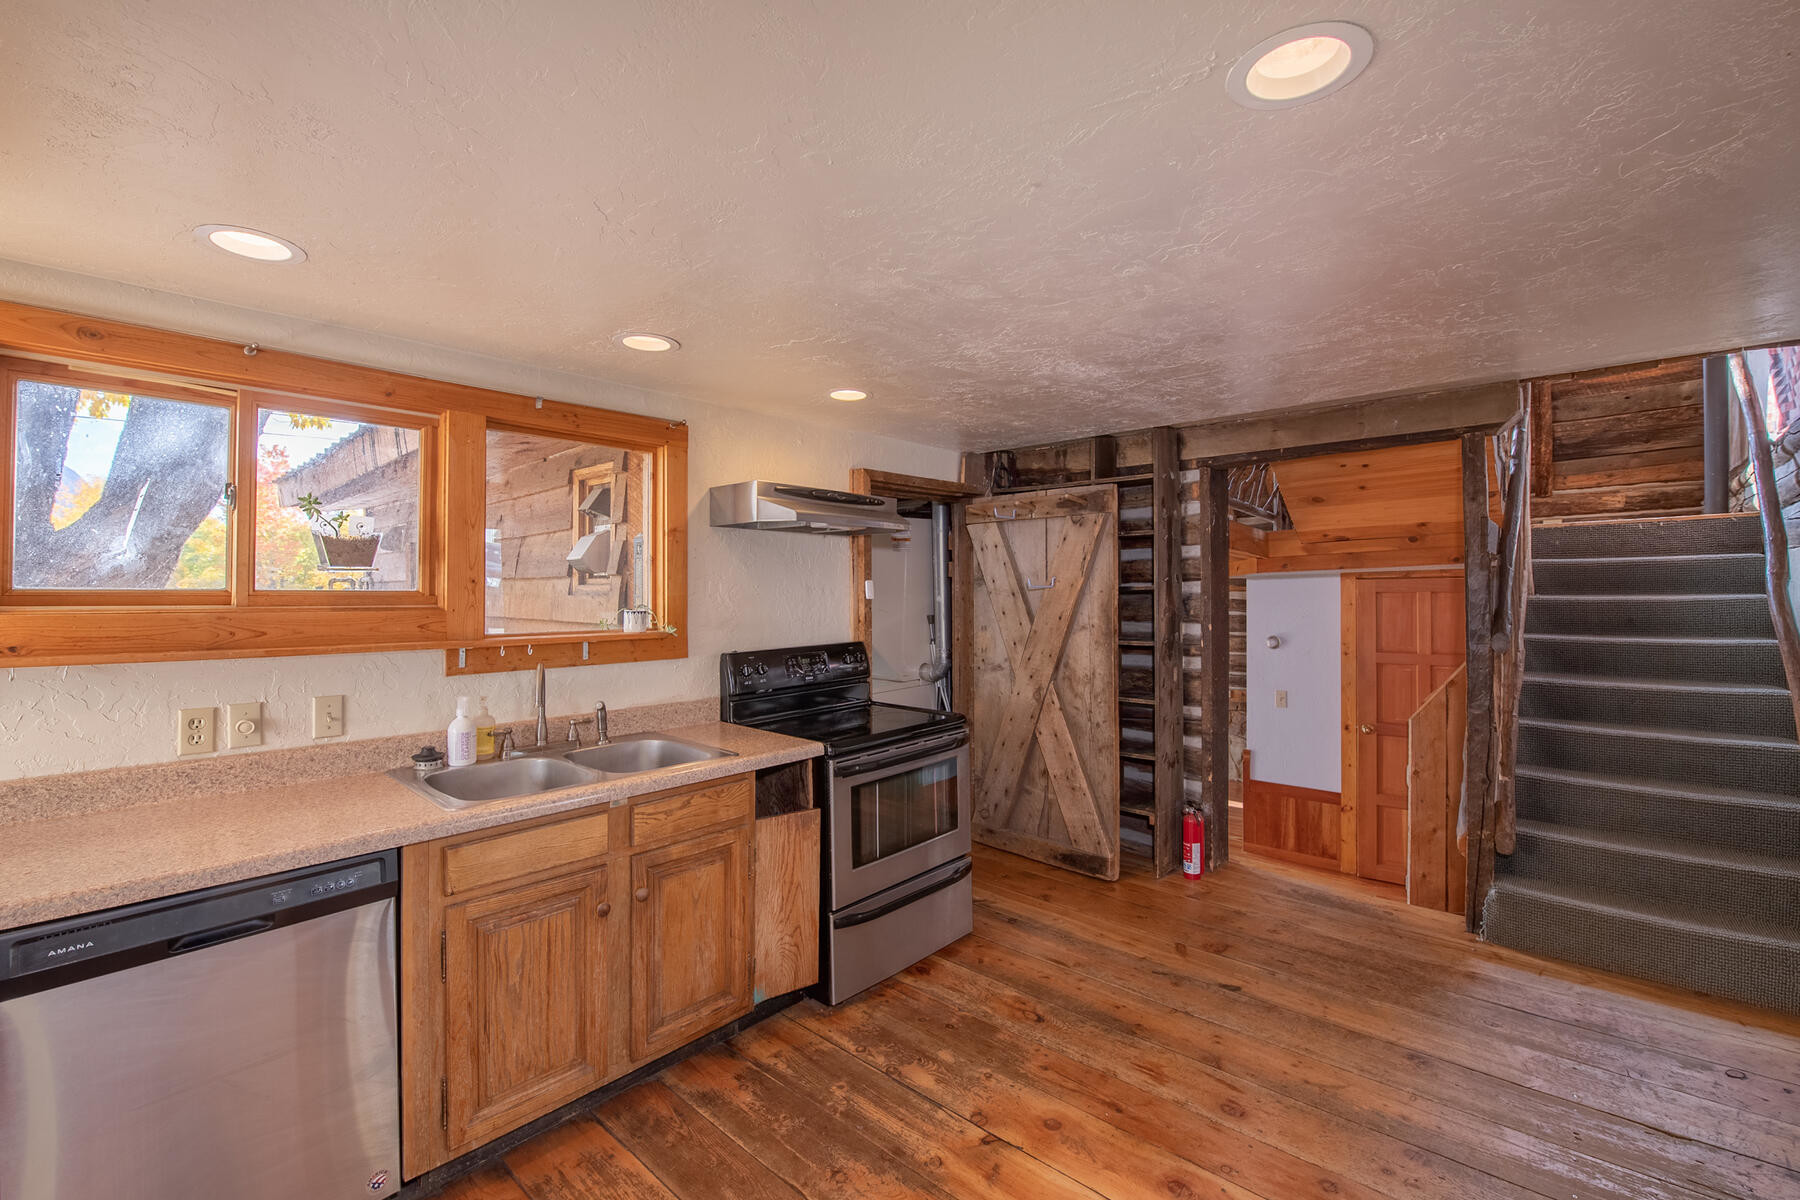 Reclaimed 2-Bedroom House In Crested Butte